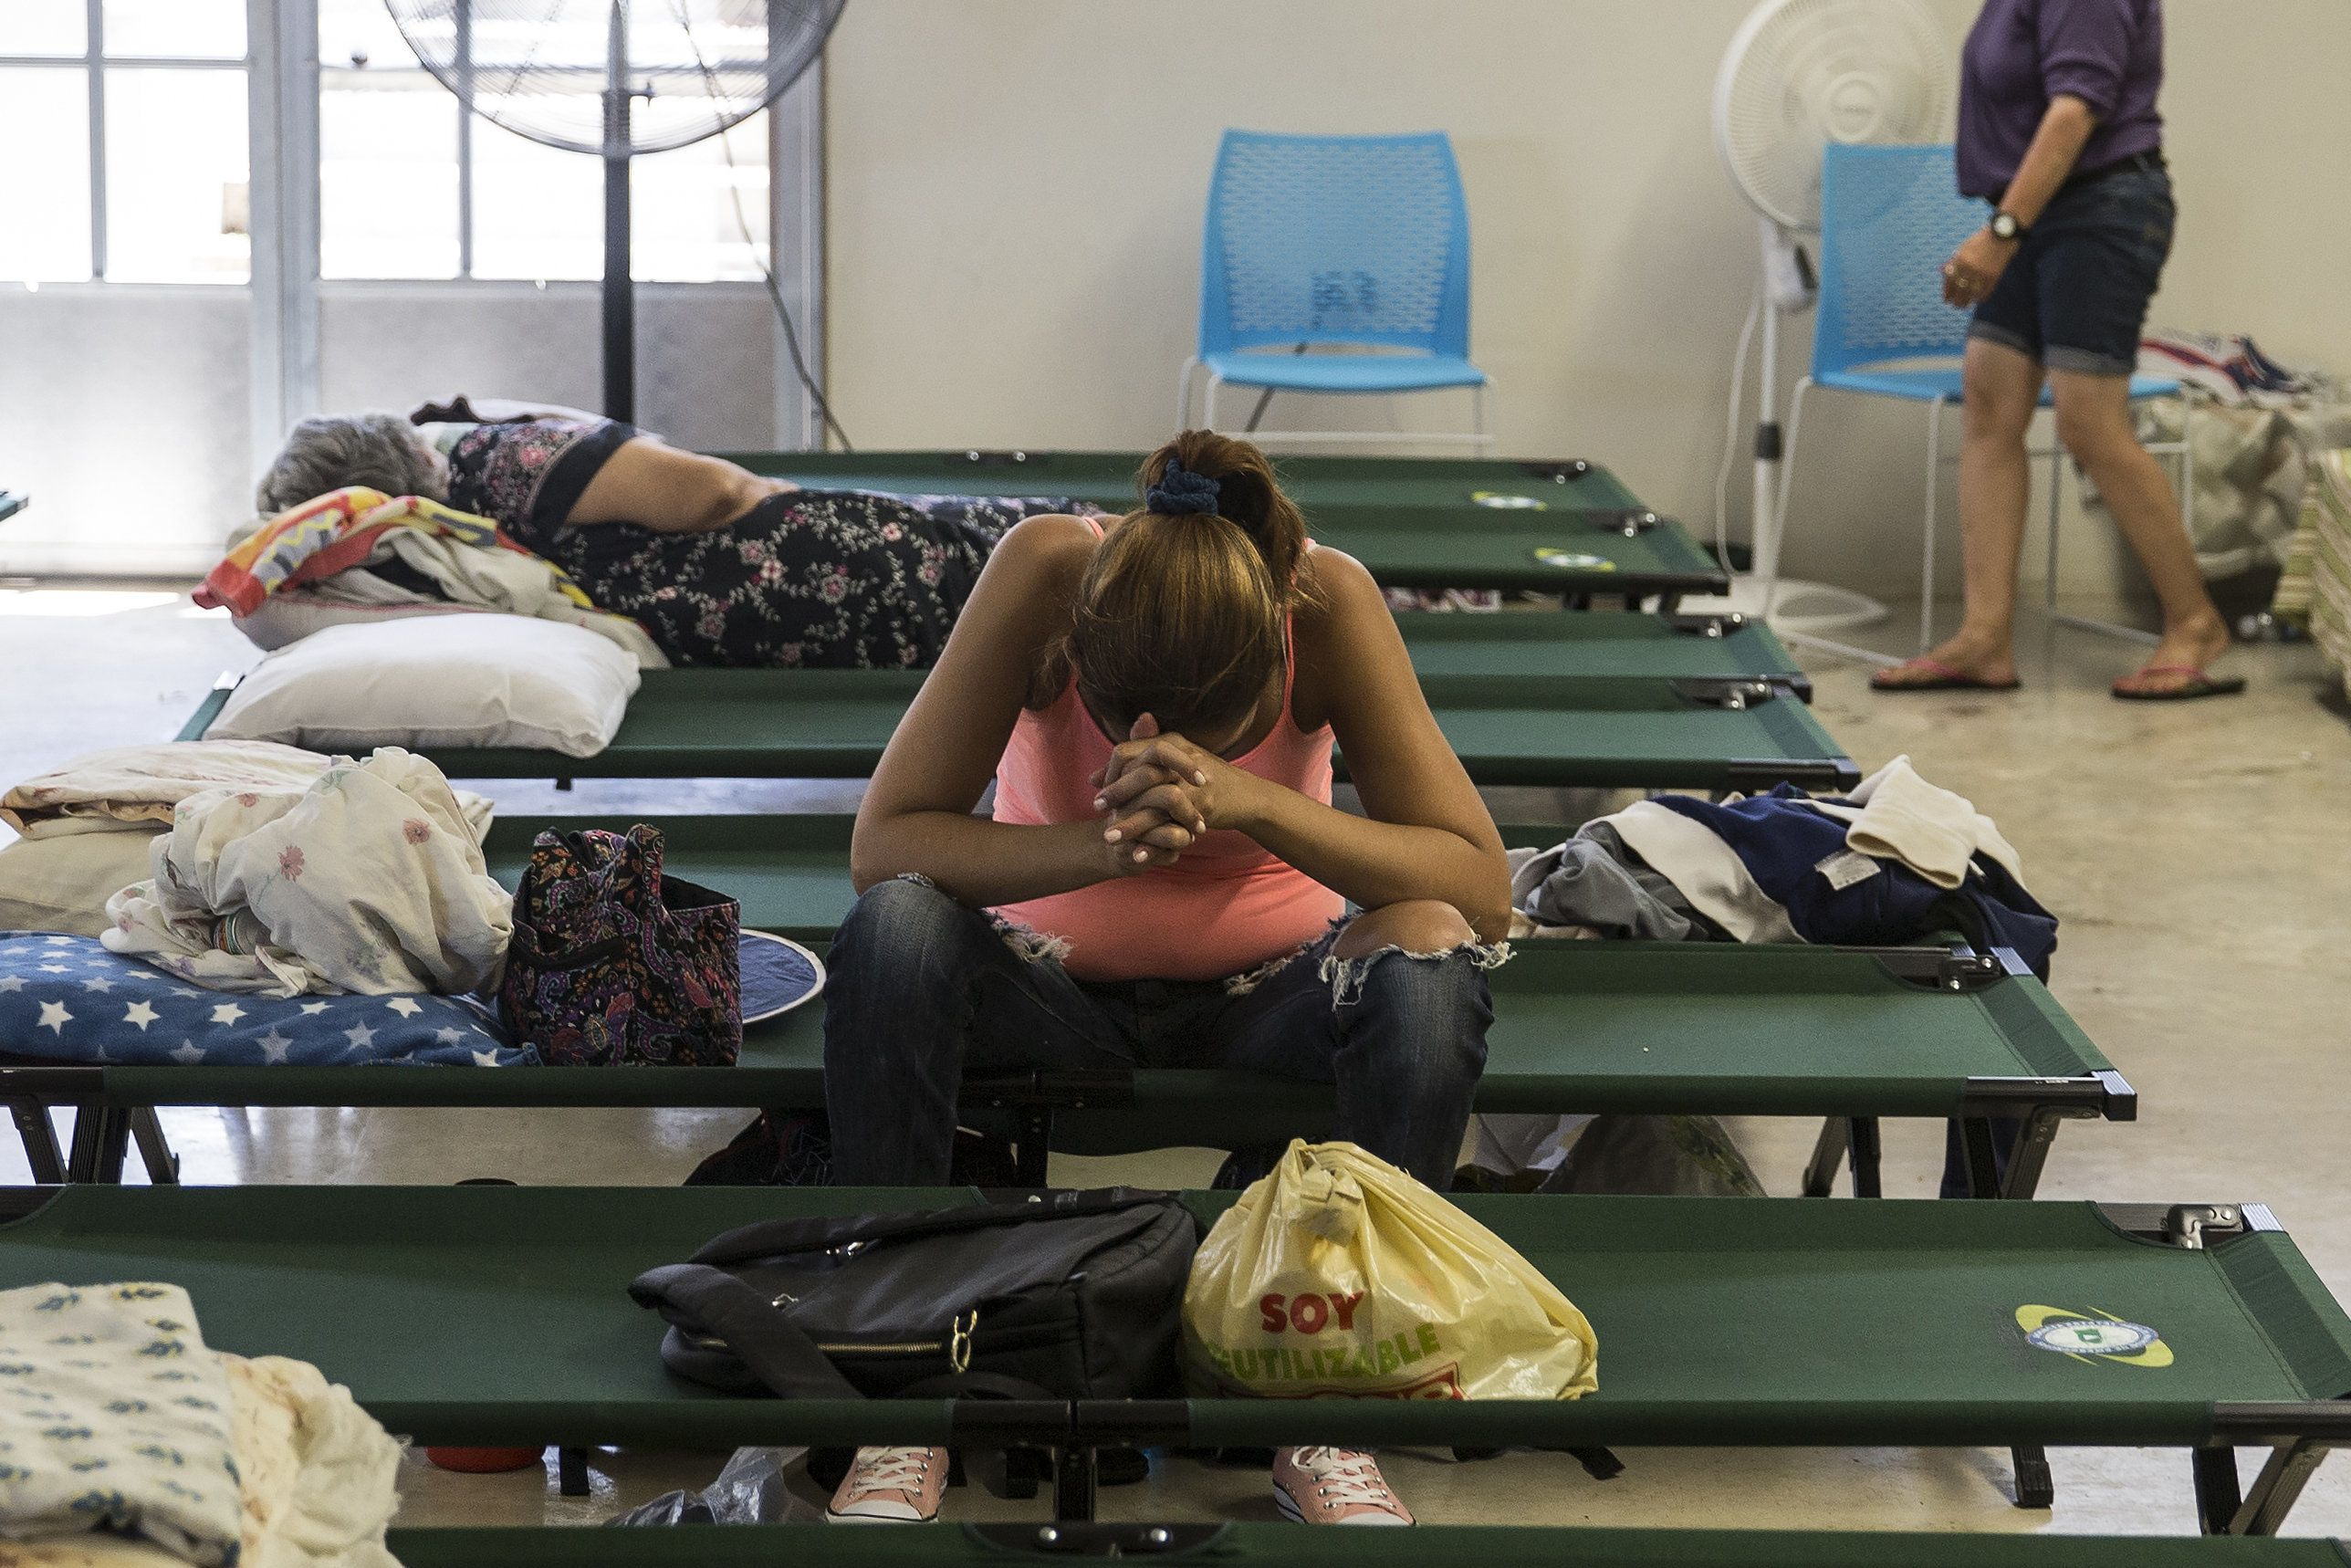 huffingtonpost.com - Here's How You Can Help People In Puerto Rico